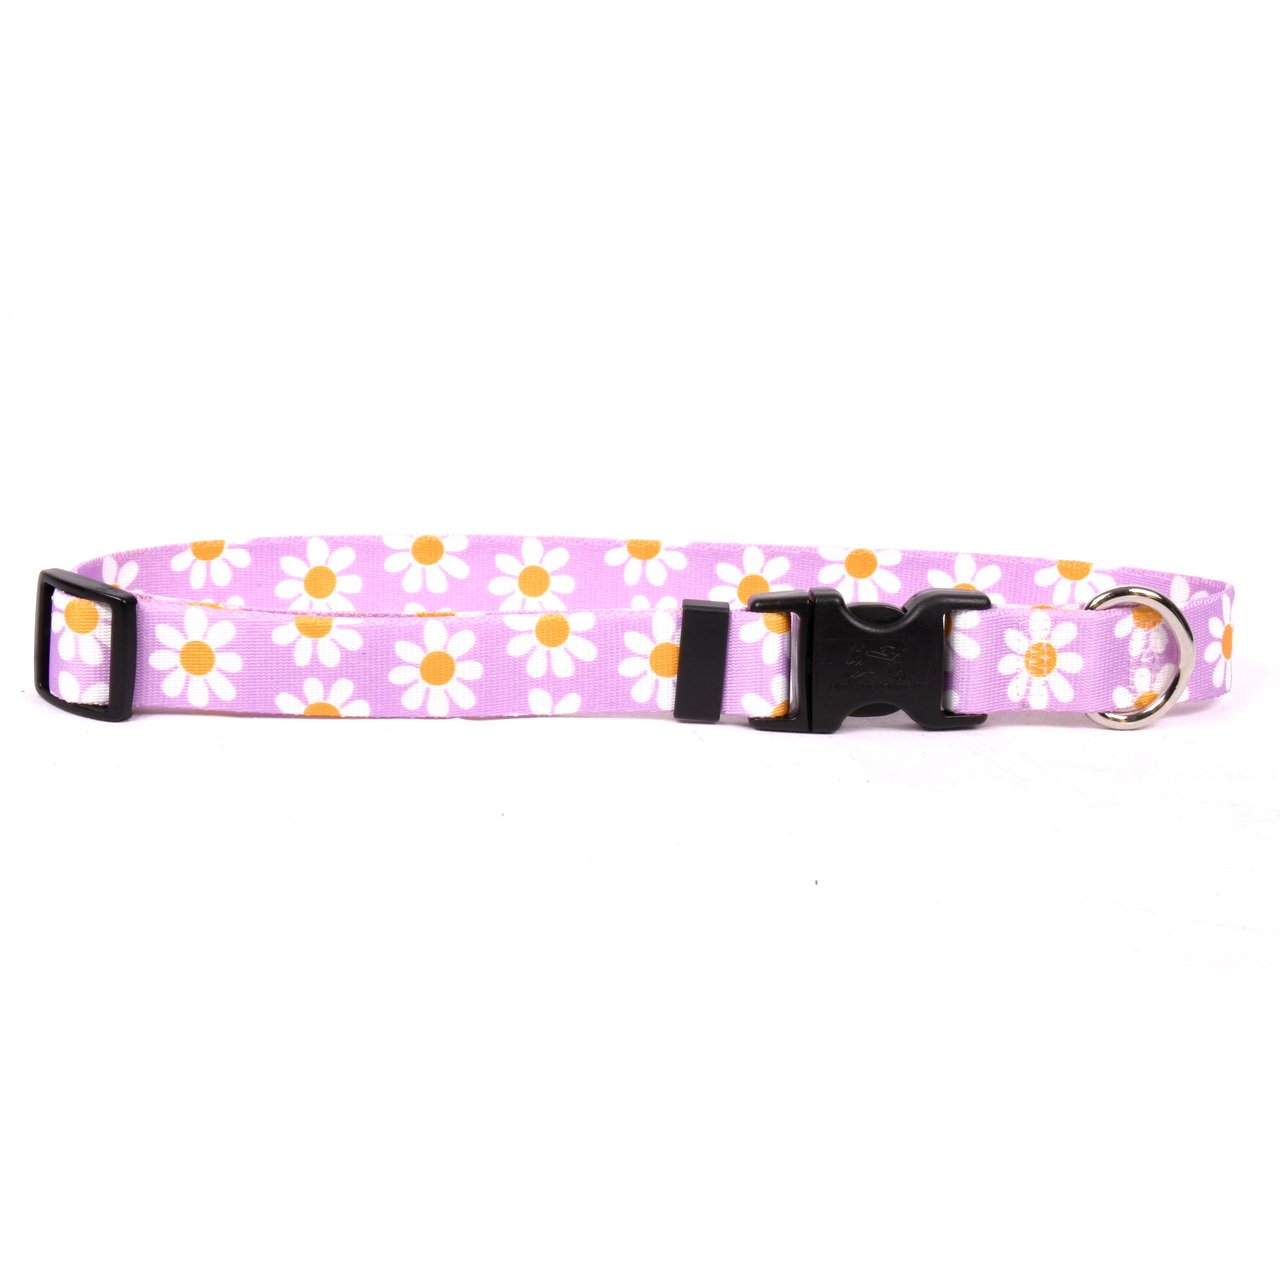 Yellow Dog Design Lavender Daisy Dog Collar 3/4'' Wide and Fits Neck 10 to 14'', Small